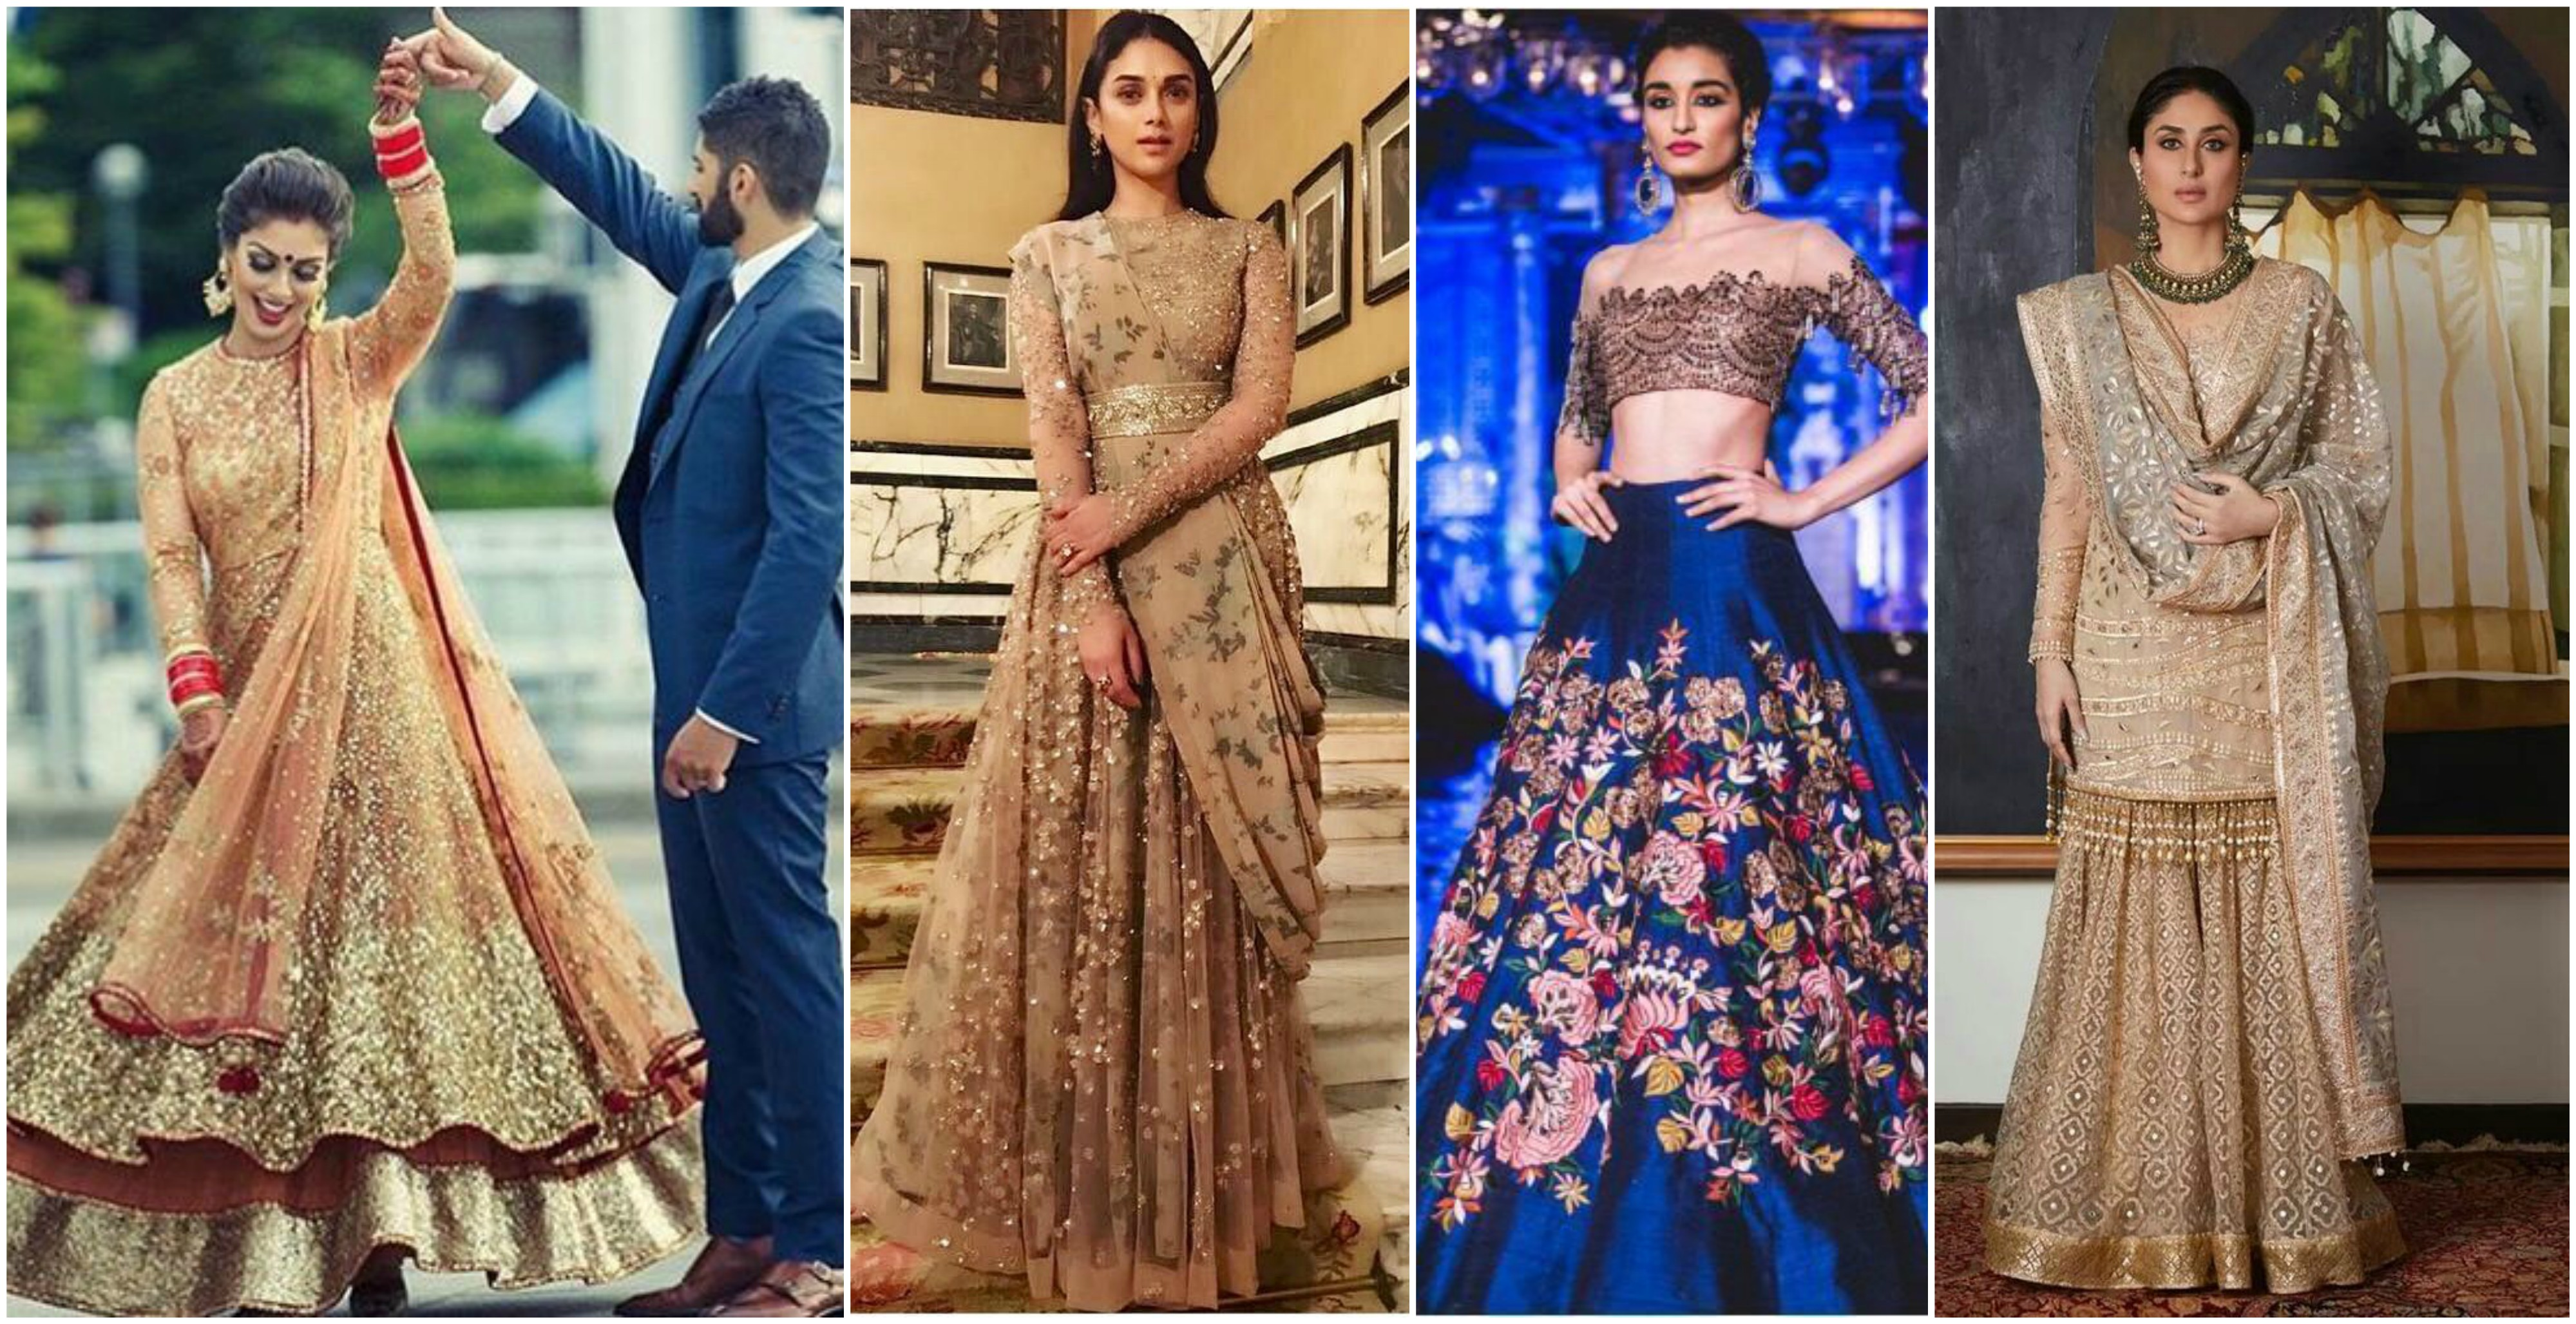 9+ Bridal Wear Wedding trends 2018 for Engagement, Sangeet